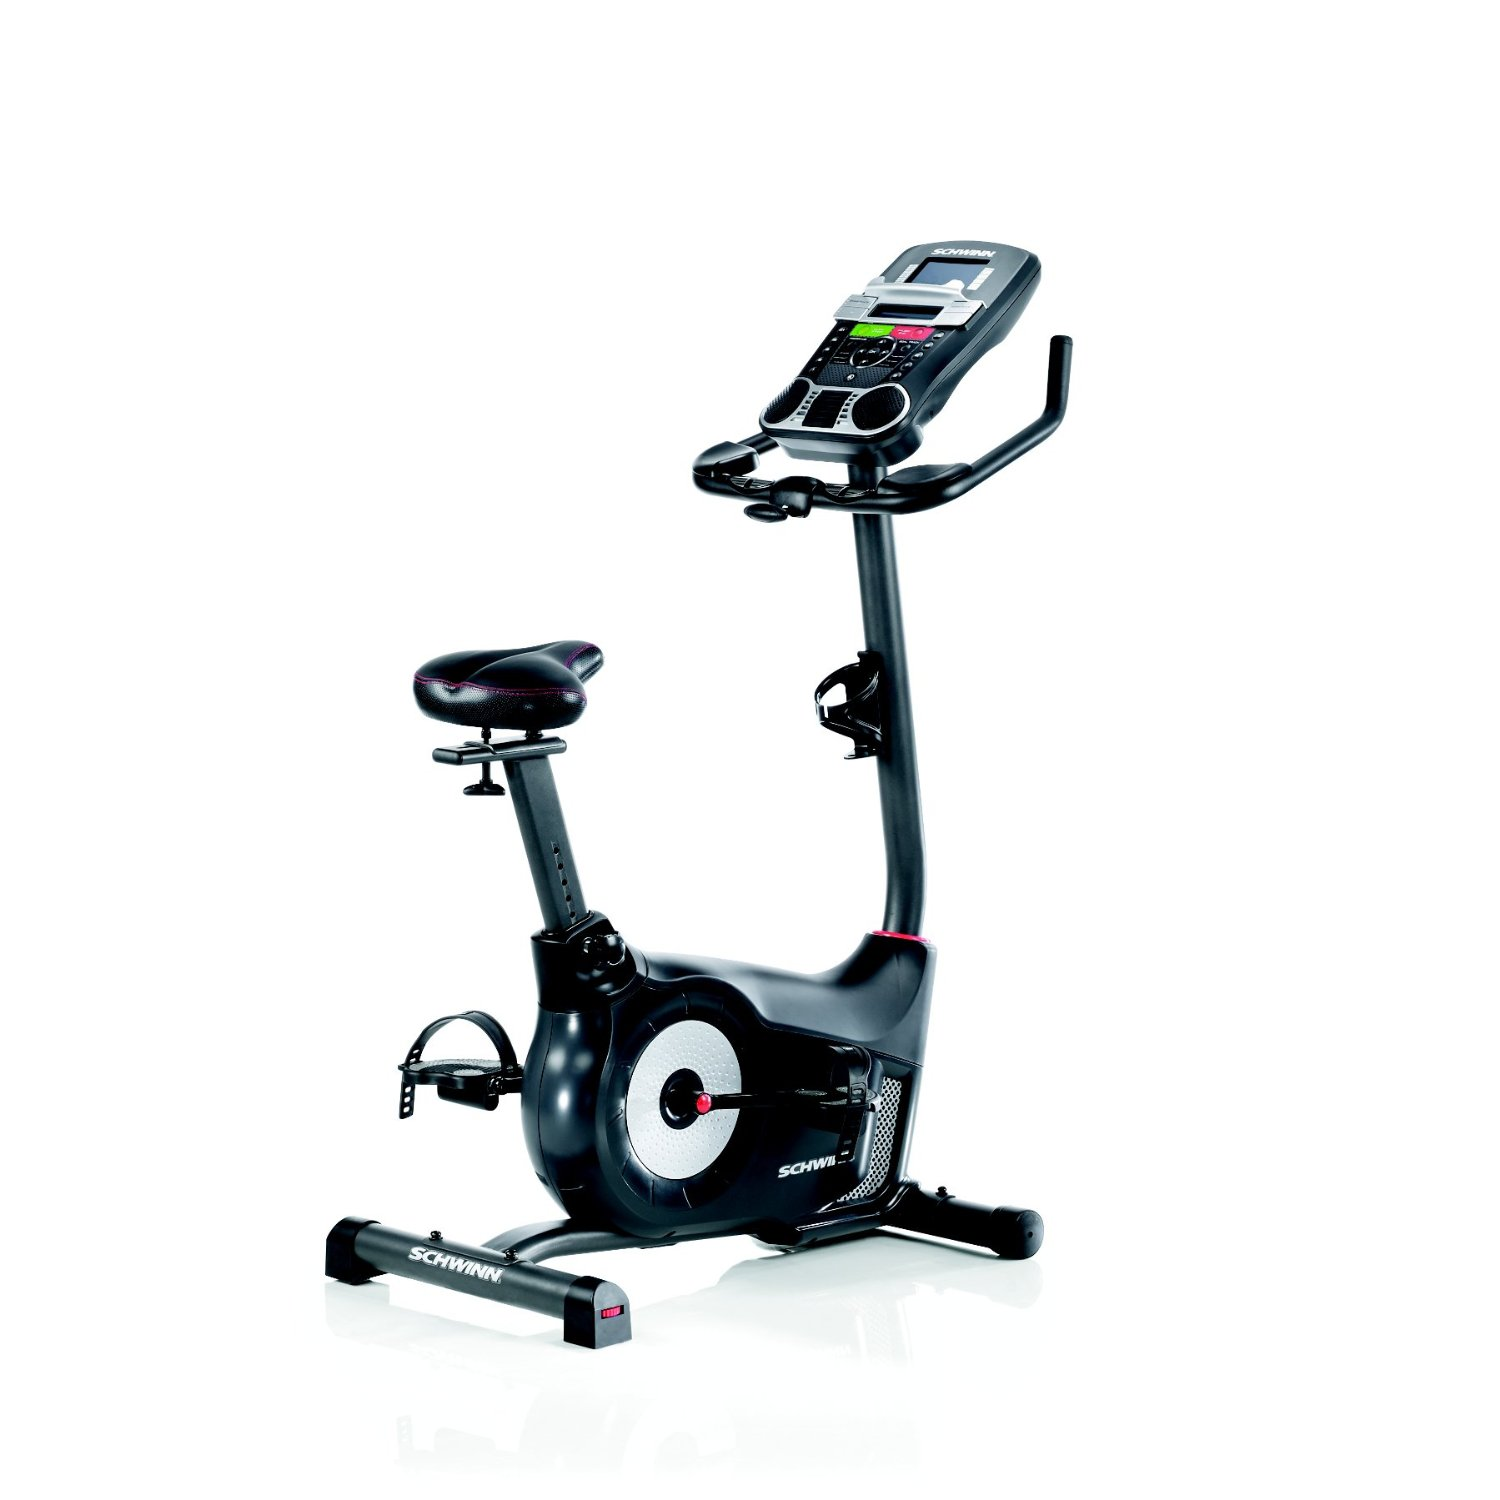 Schwinn 170 Upright Stationary Exercise Fitness Workout Bike Manual Guide